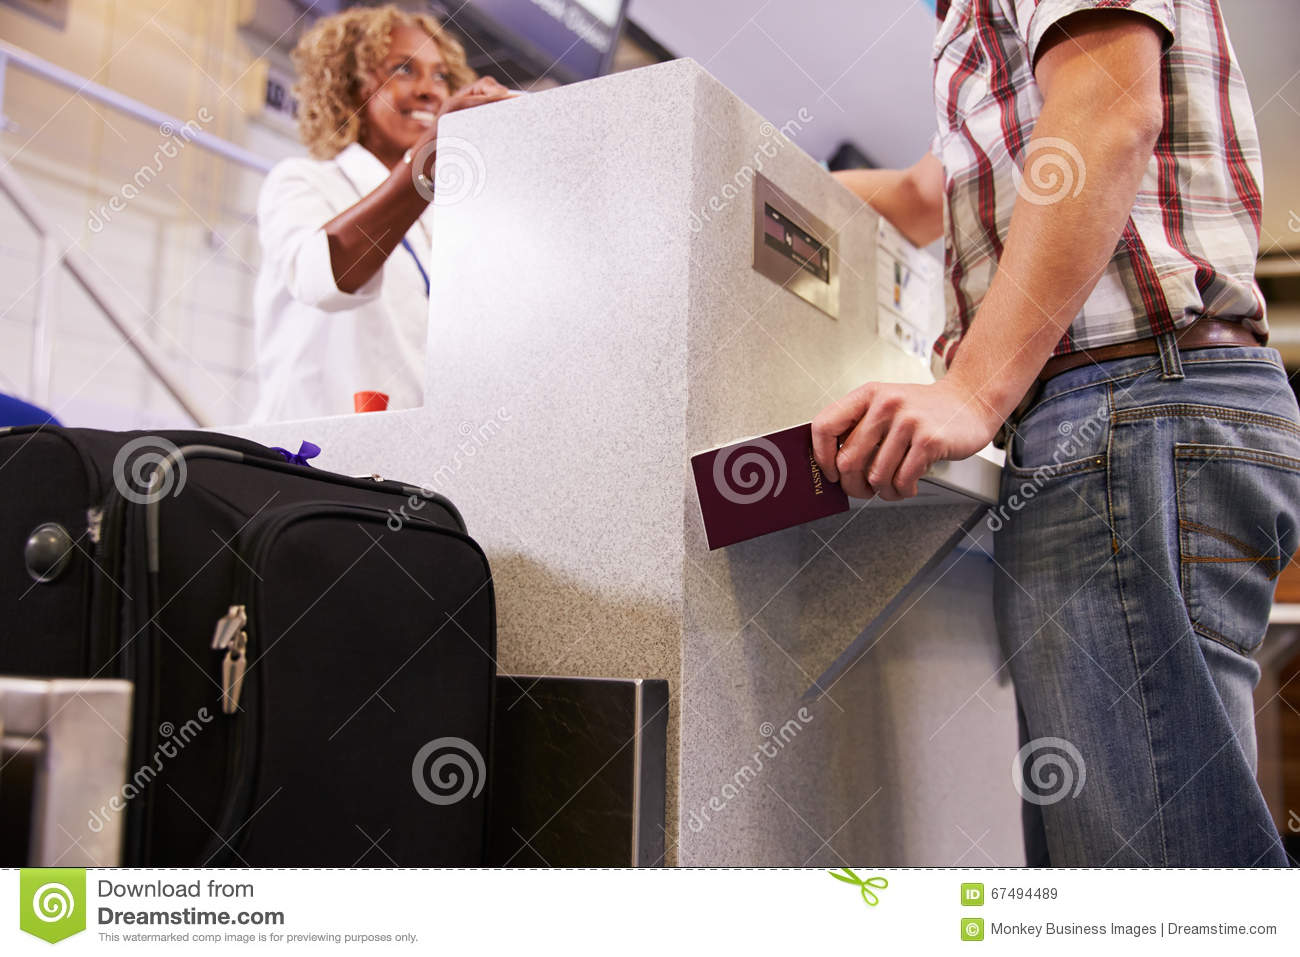 Passenger Weighing Luggage At Airport Check In